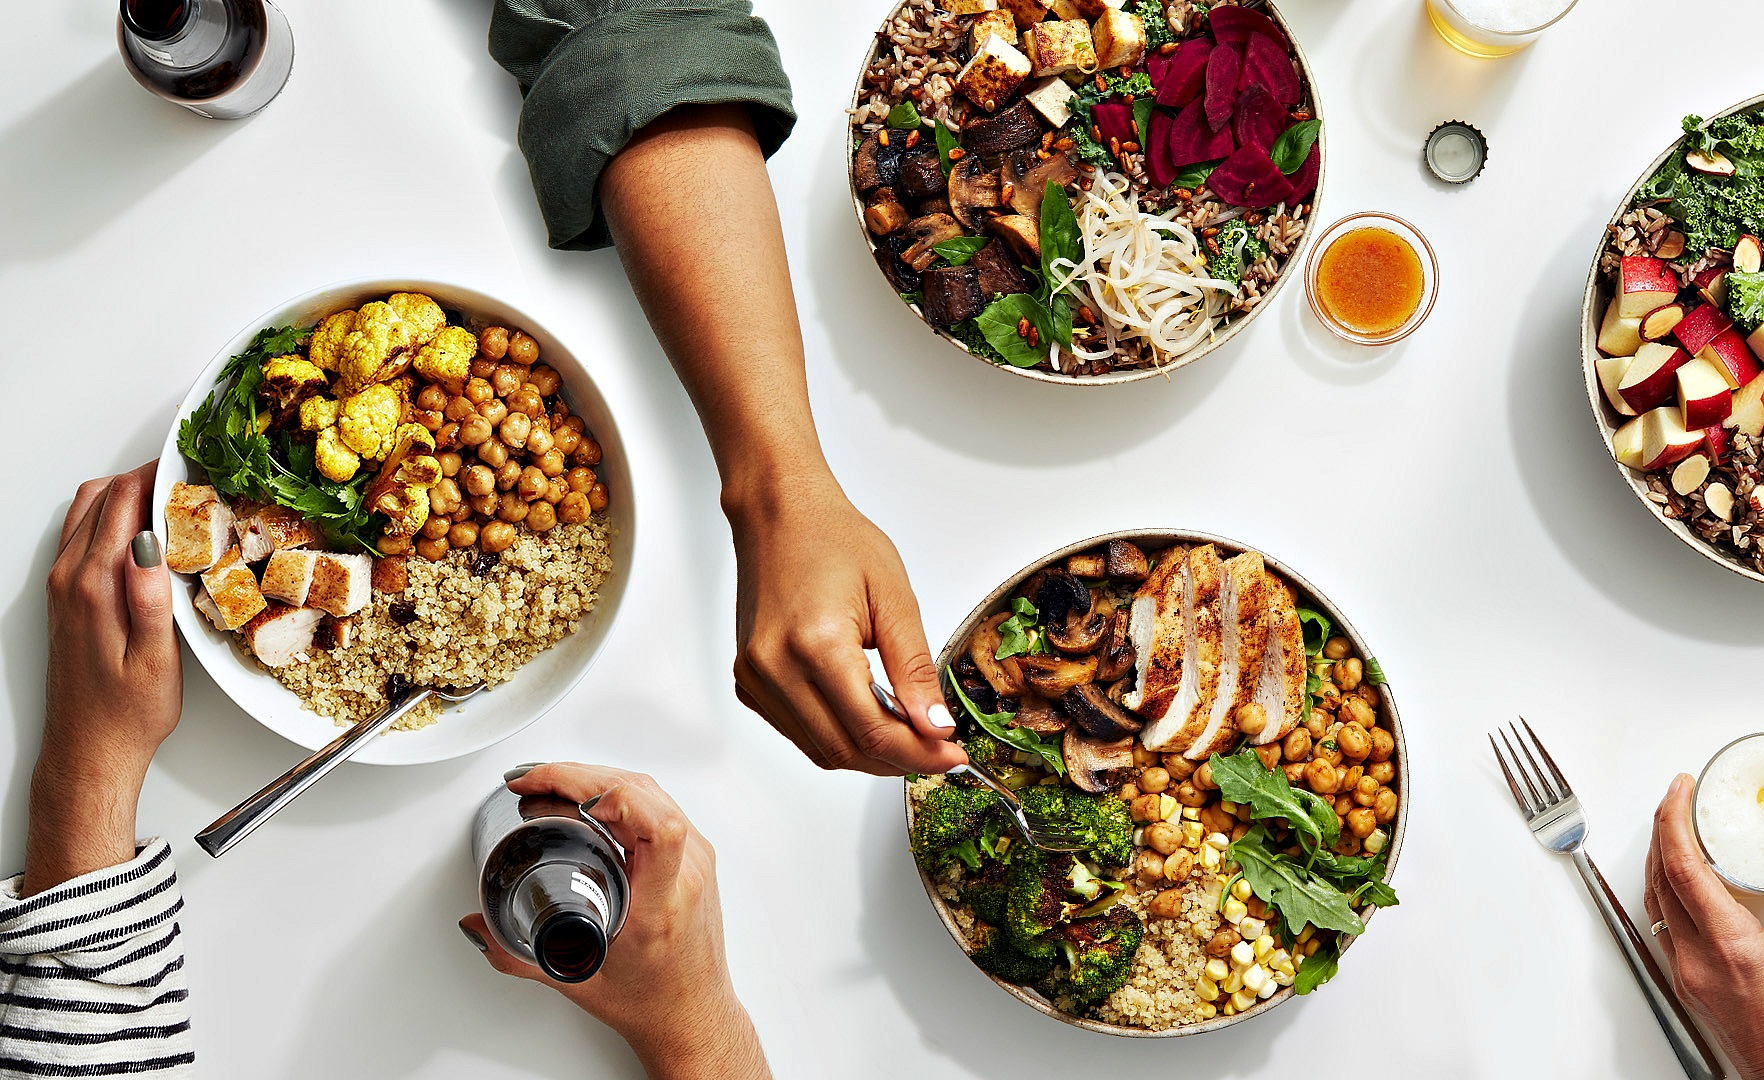 The sweetgreen promo code good for $3 off sweetgreen ...